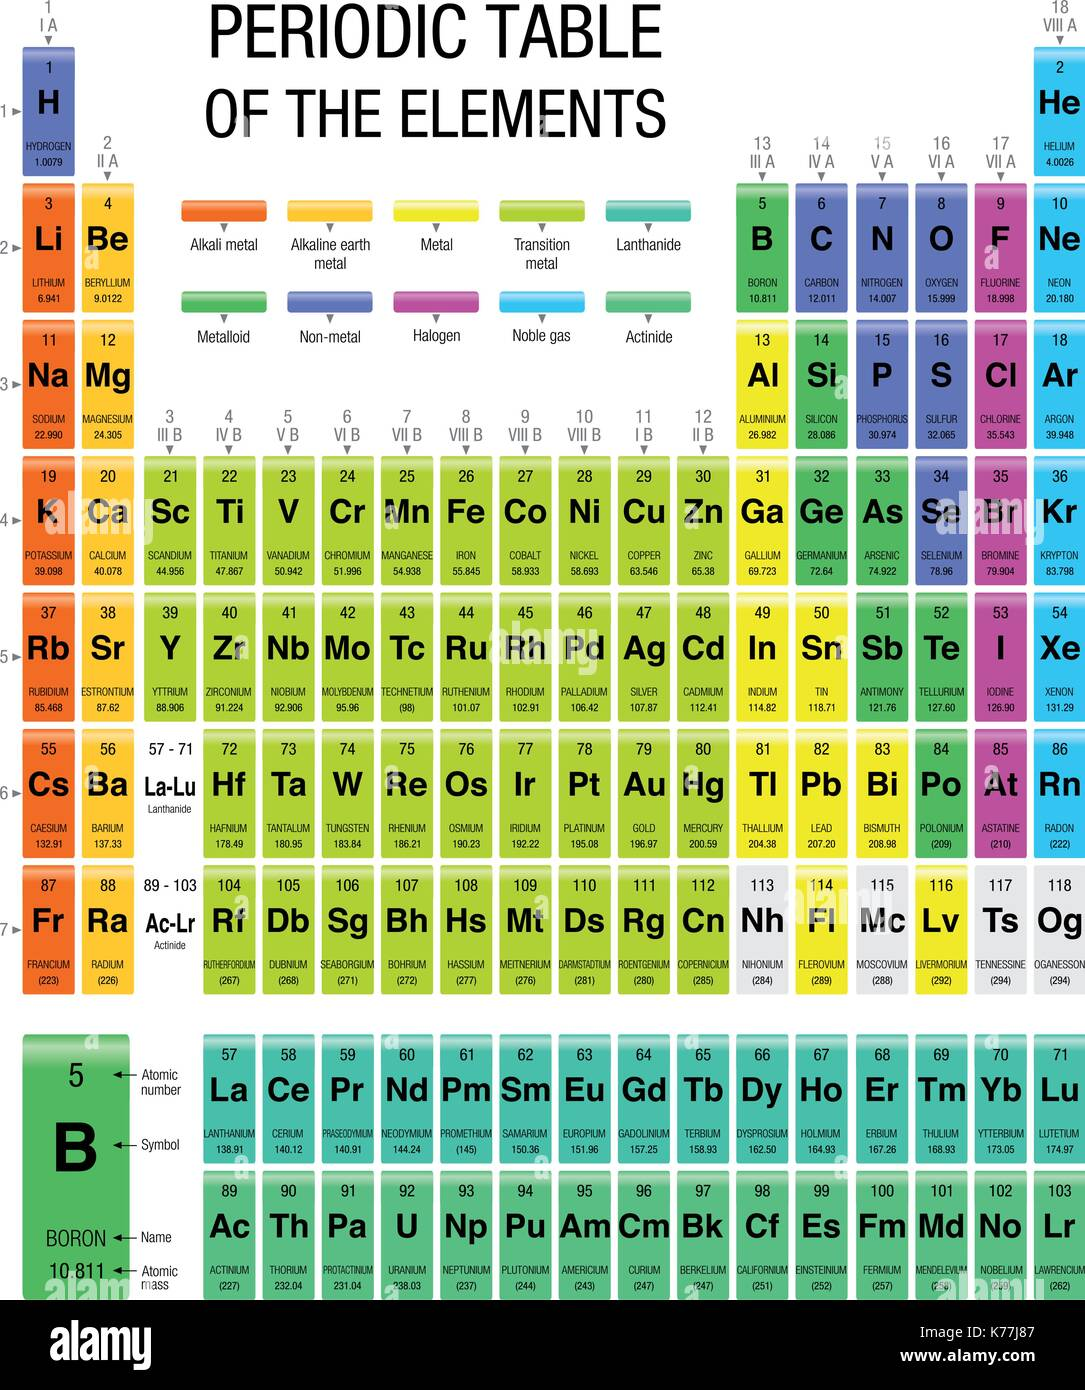 Periodic table of elements with the 4 new elements included on periodic table of elements with the 4 new elements included on november 28 2016 by the iupac size 216 x 28 cm gamestrikefo Images